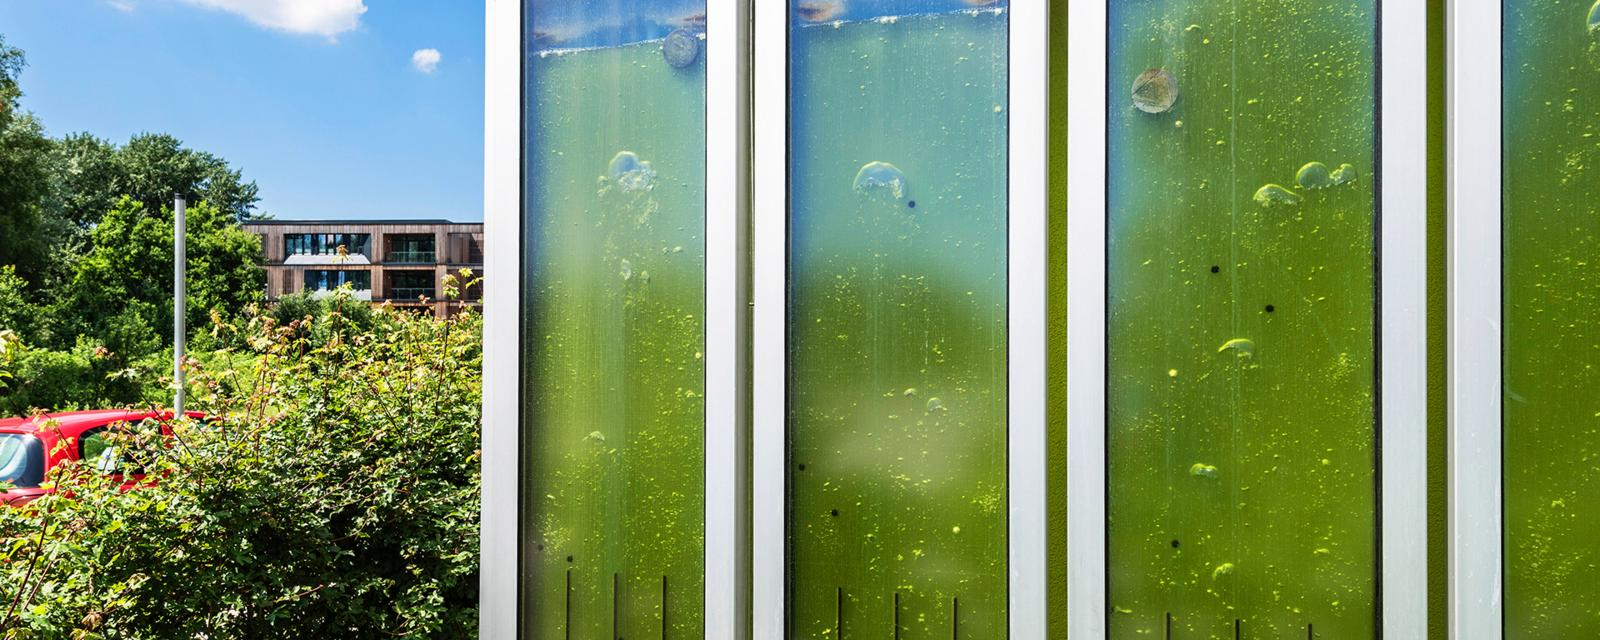 The homes that could be covered in algae